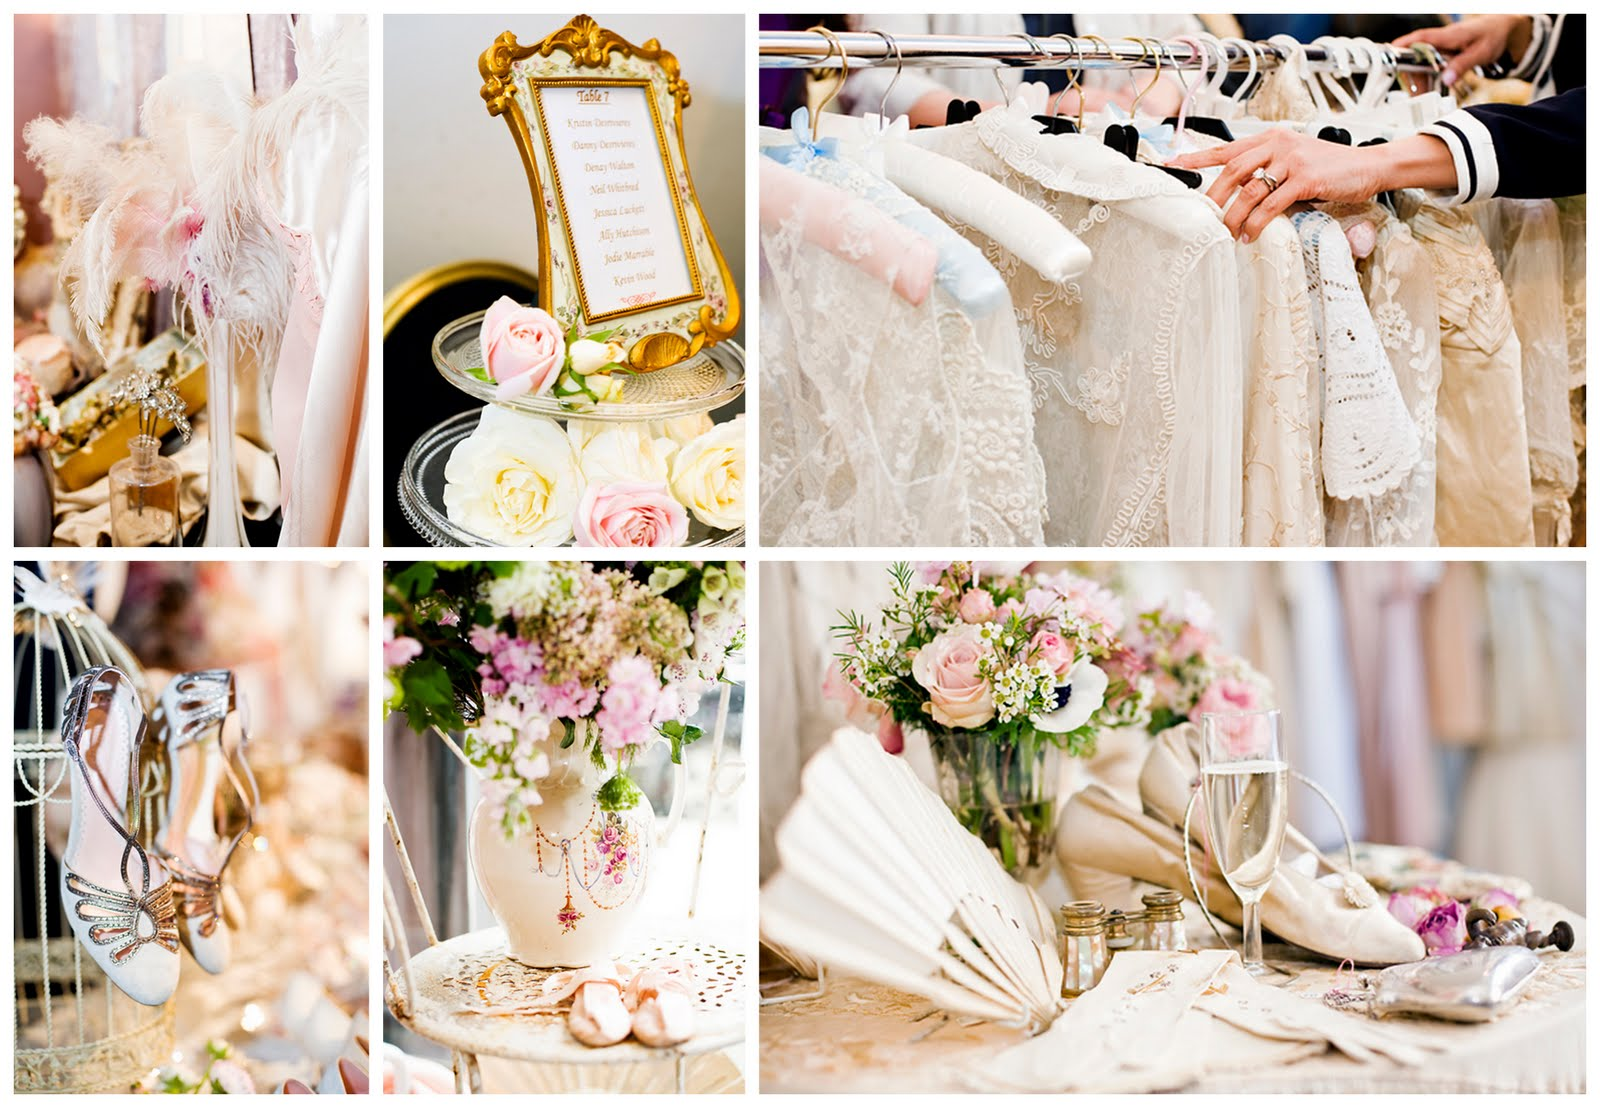 Discover how to find a high-quality and reliable wedding fair (웨딩박람회) through different means such as the internet